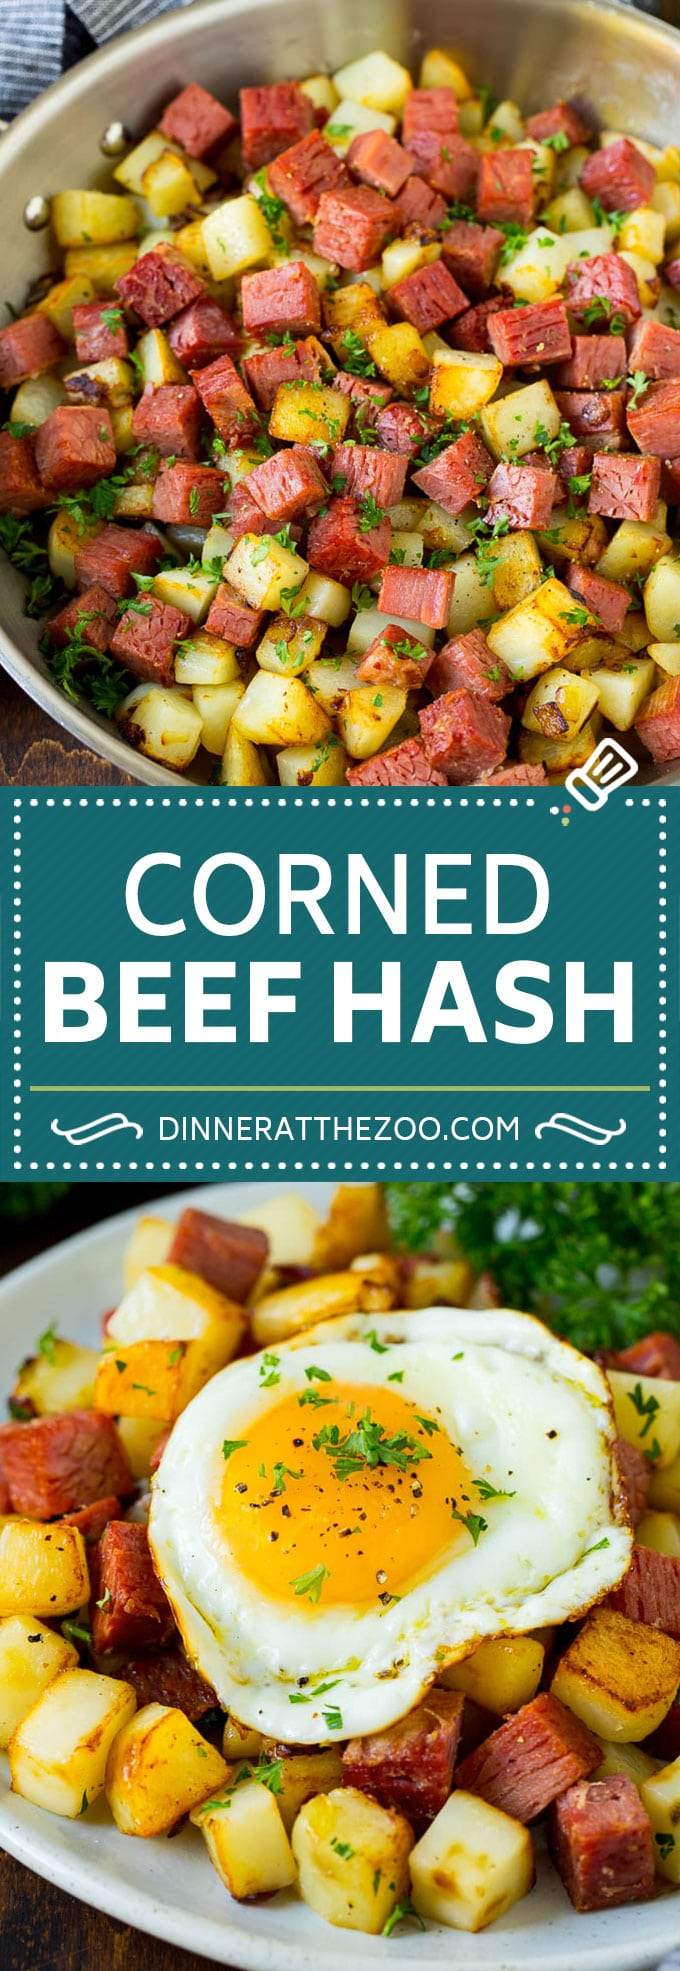 Corned Beef Hash Recipe #hash #cornedbeef #stpatricksday #breakfast #brunch #potatoes #dinneratthezoo